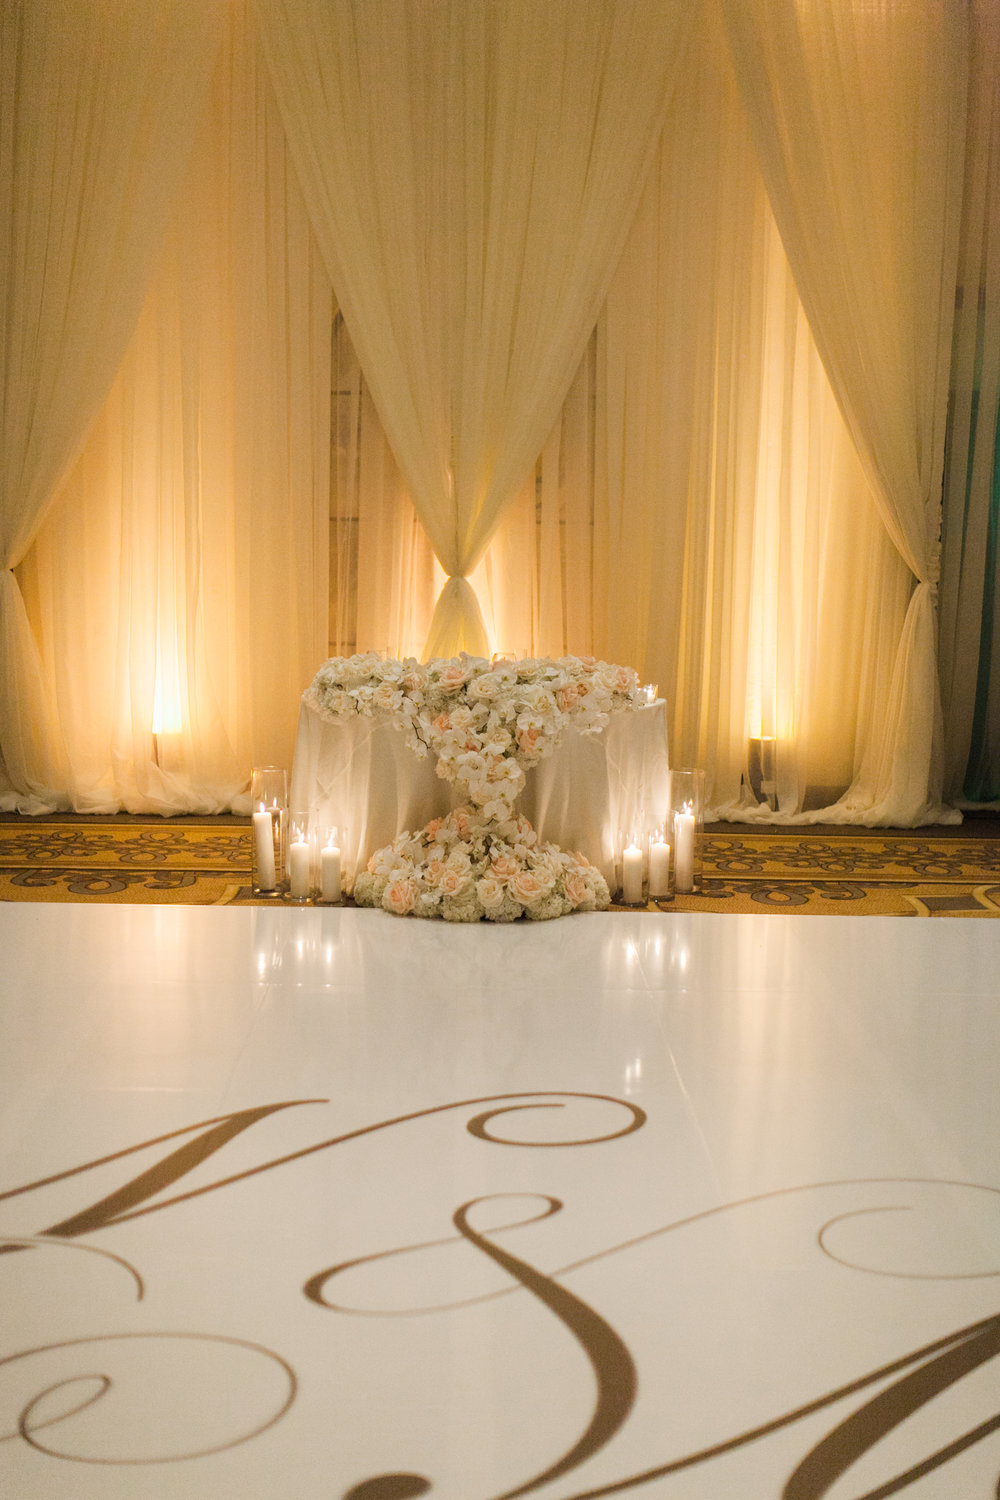 Custom dance floor with the bride and groom's initials mixed with extravagant draping